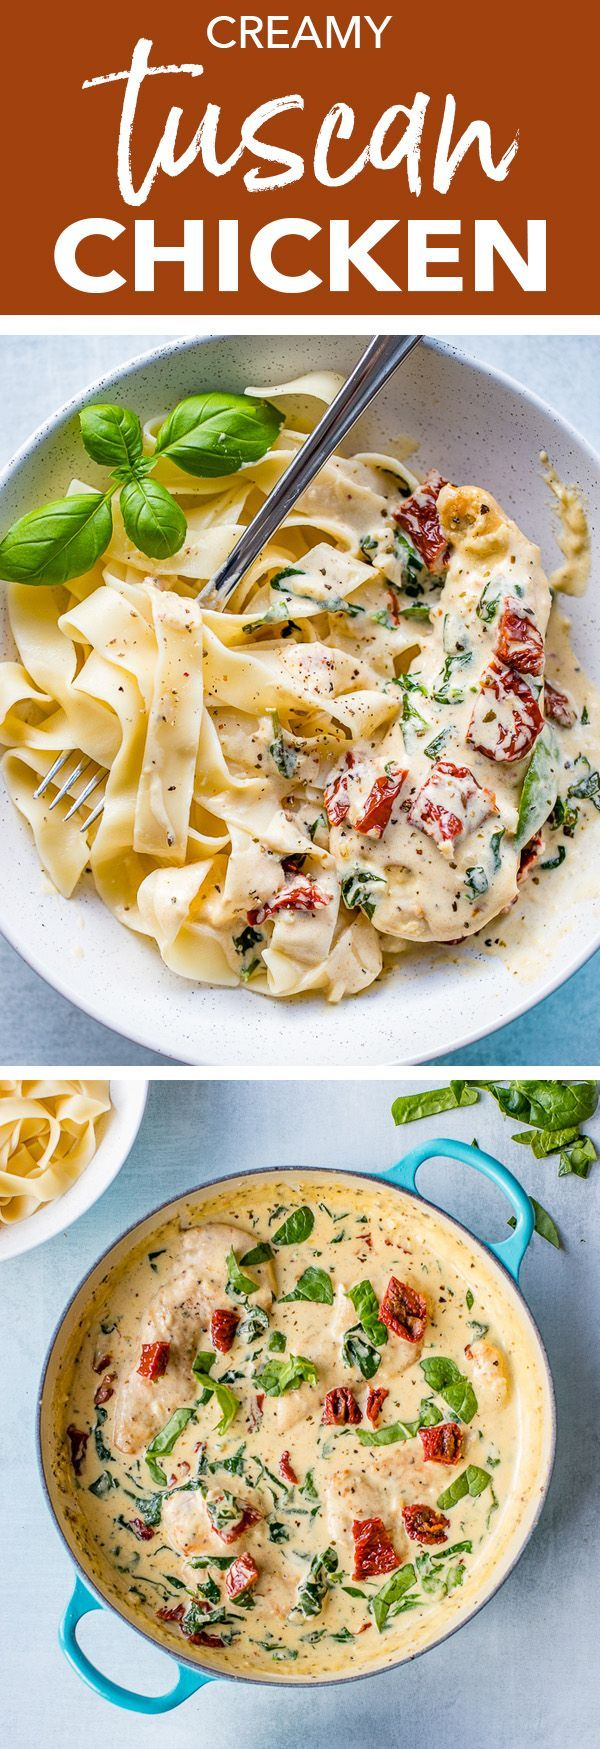 Tuscan Chicken A restaurant-quality meal on the table in less than 30 minutes - creamy Tuscan chicken with fresh garlic, spinach, and sun-dried tomatoes is as easy as it is delicious, and as perfect for busy weeknights as it is for entertaining. via @nourishandfeteA restaurant-quality meal o...